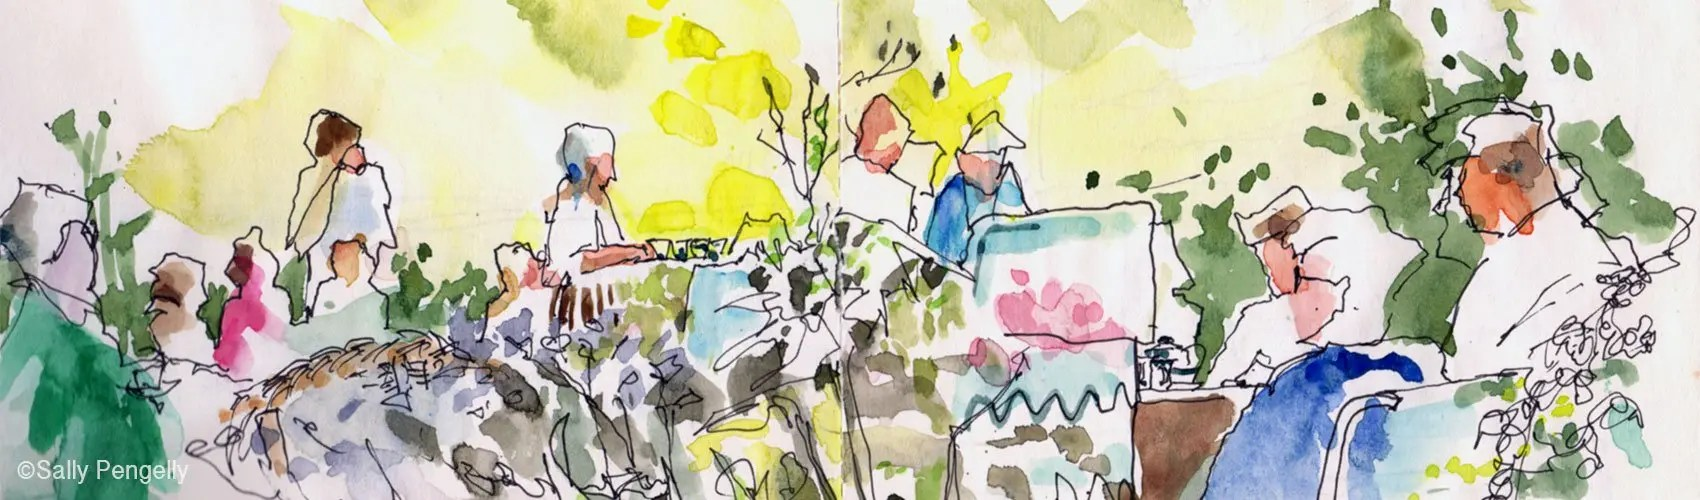 Sketch by Sally Pengelly - Painting Out Day Totland & 40th Celebrations